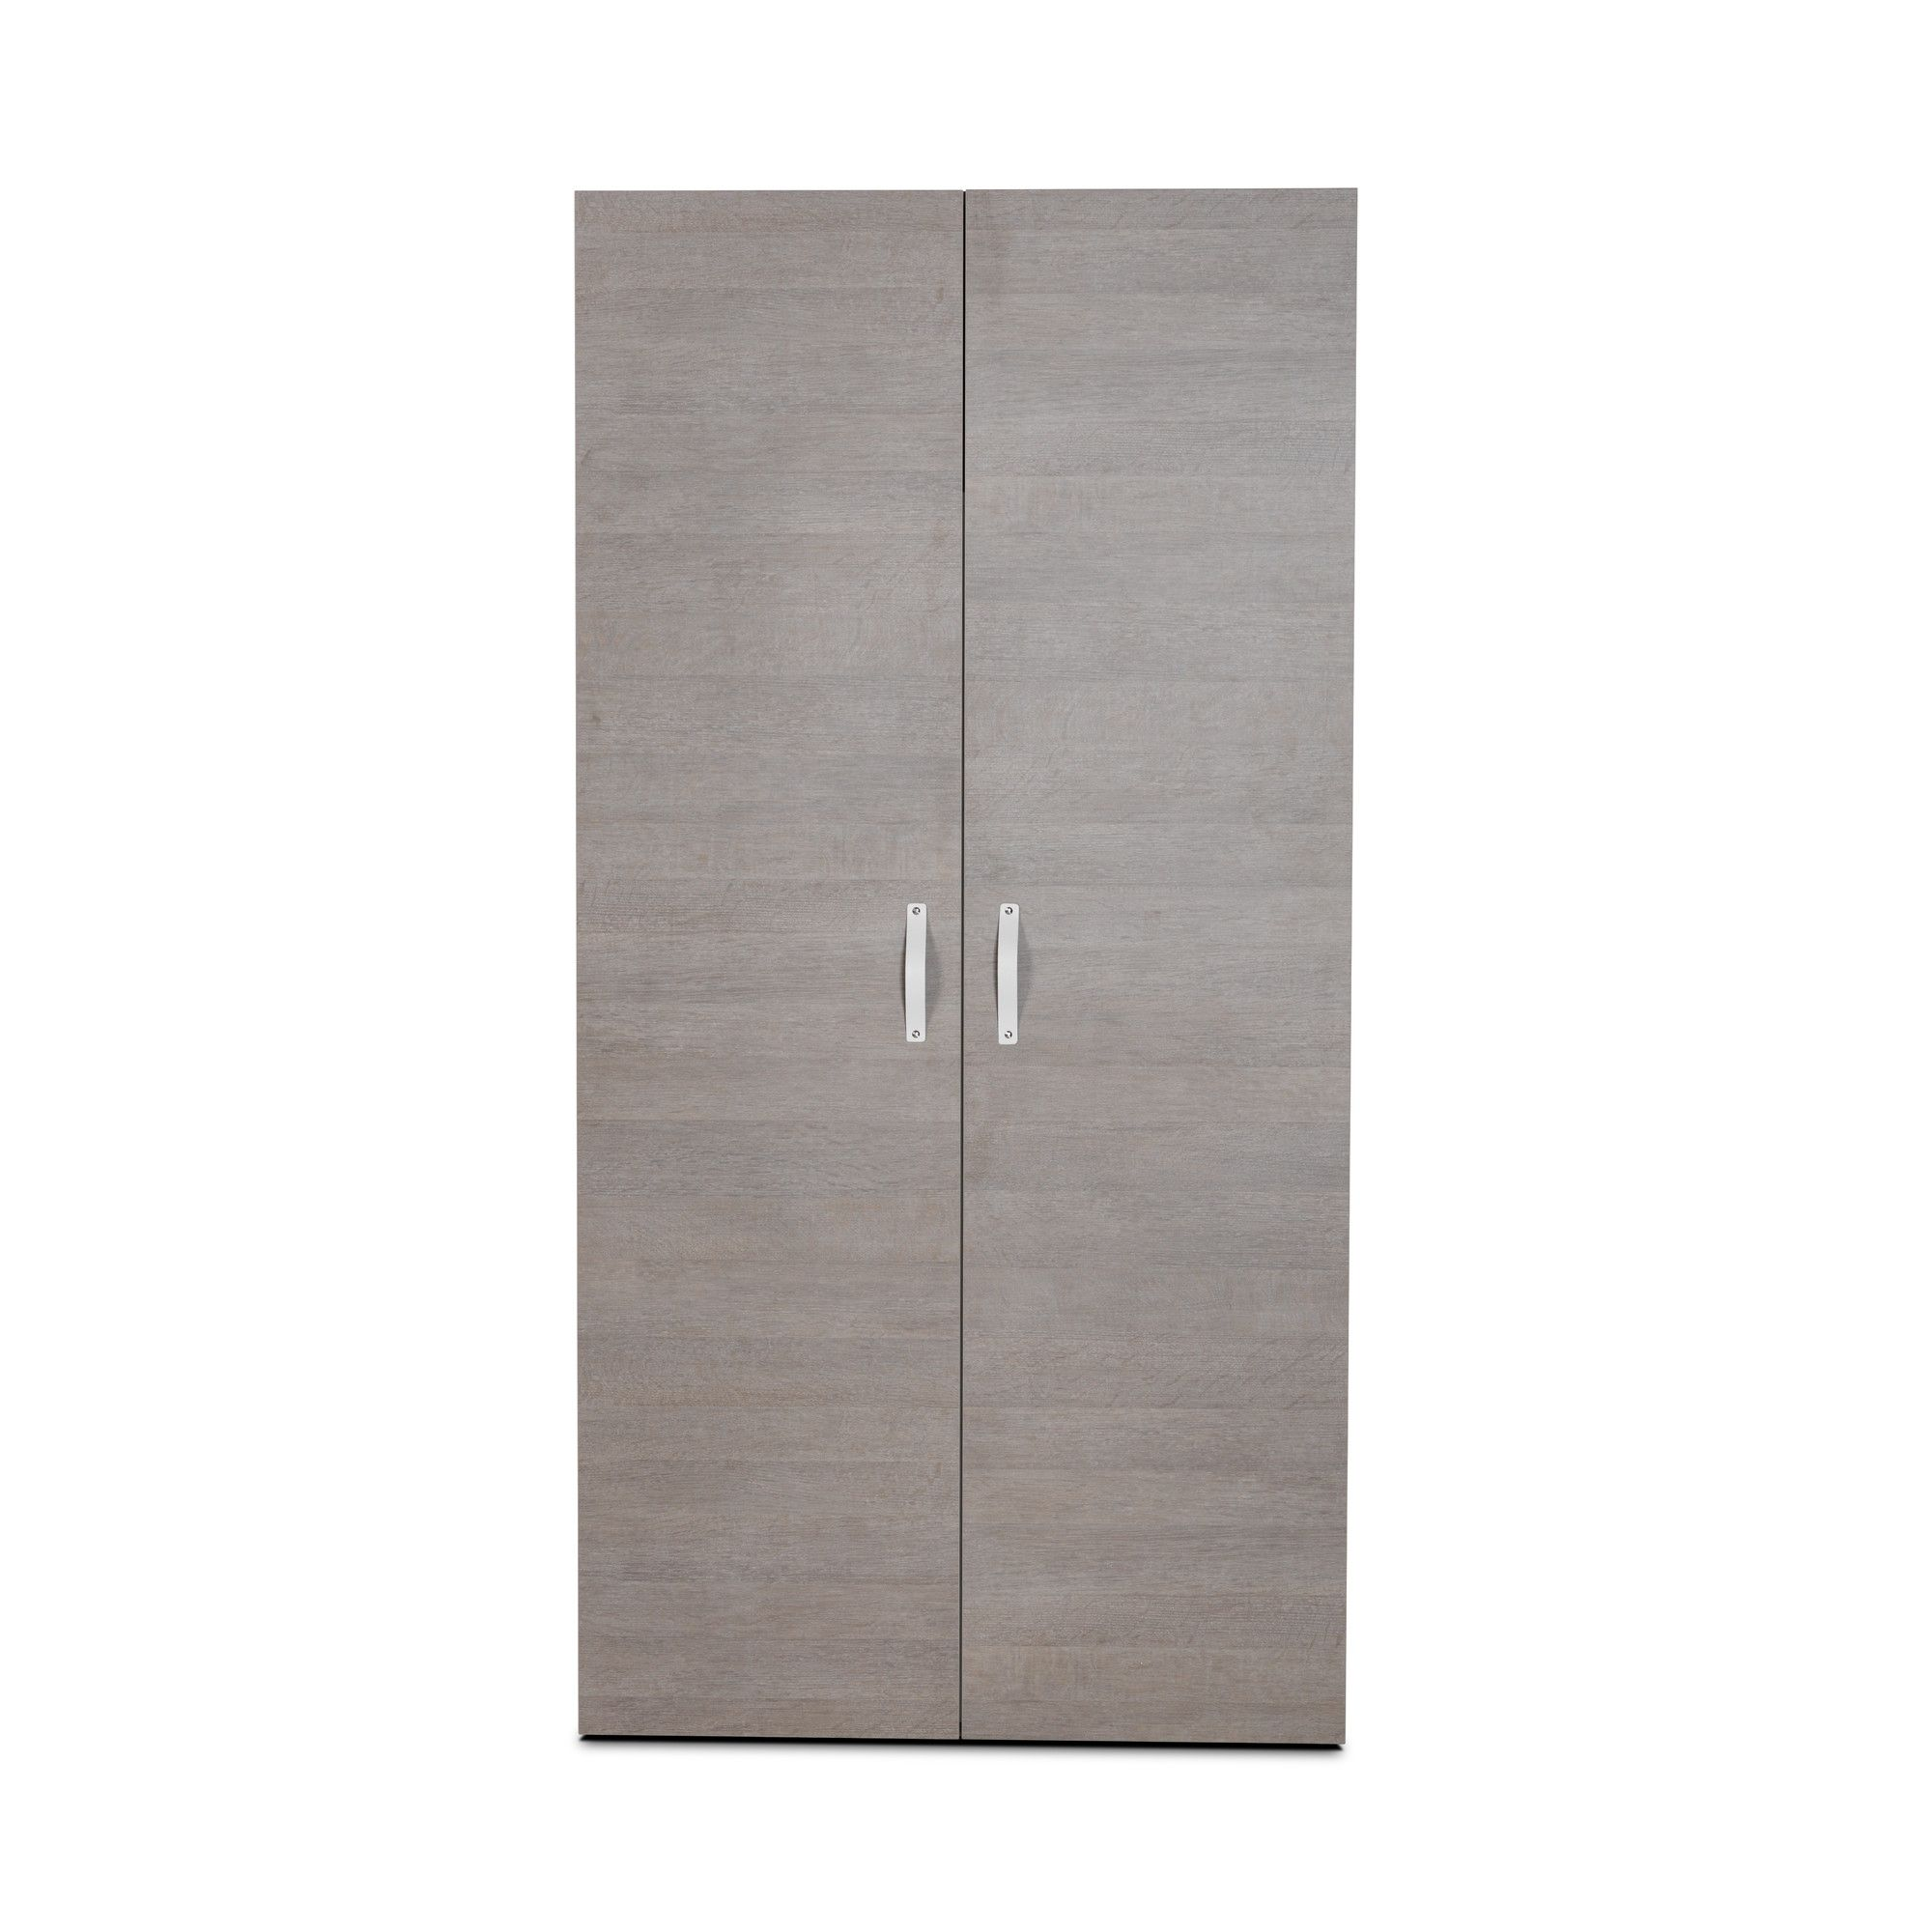 Didit Wardrobe - Riverside Oak Light at Tesco Direct